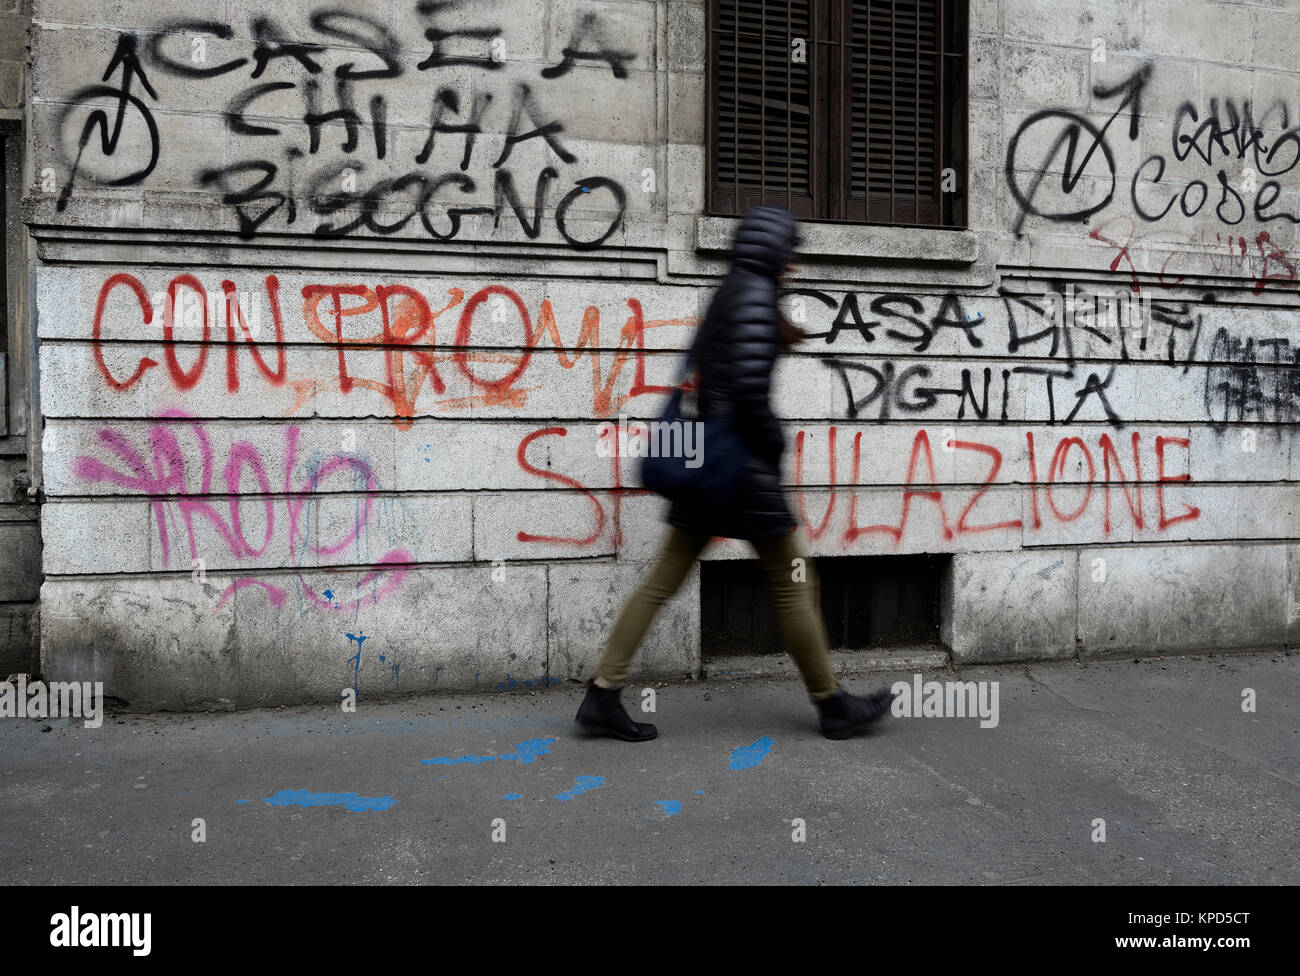 Woman walks near a wall with political writings - Stock Image